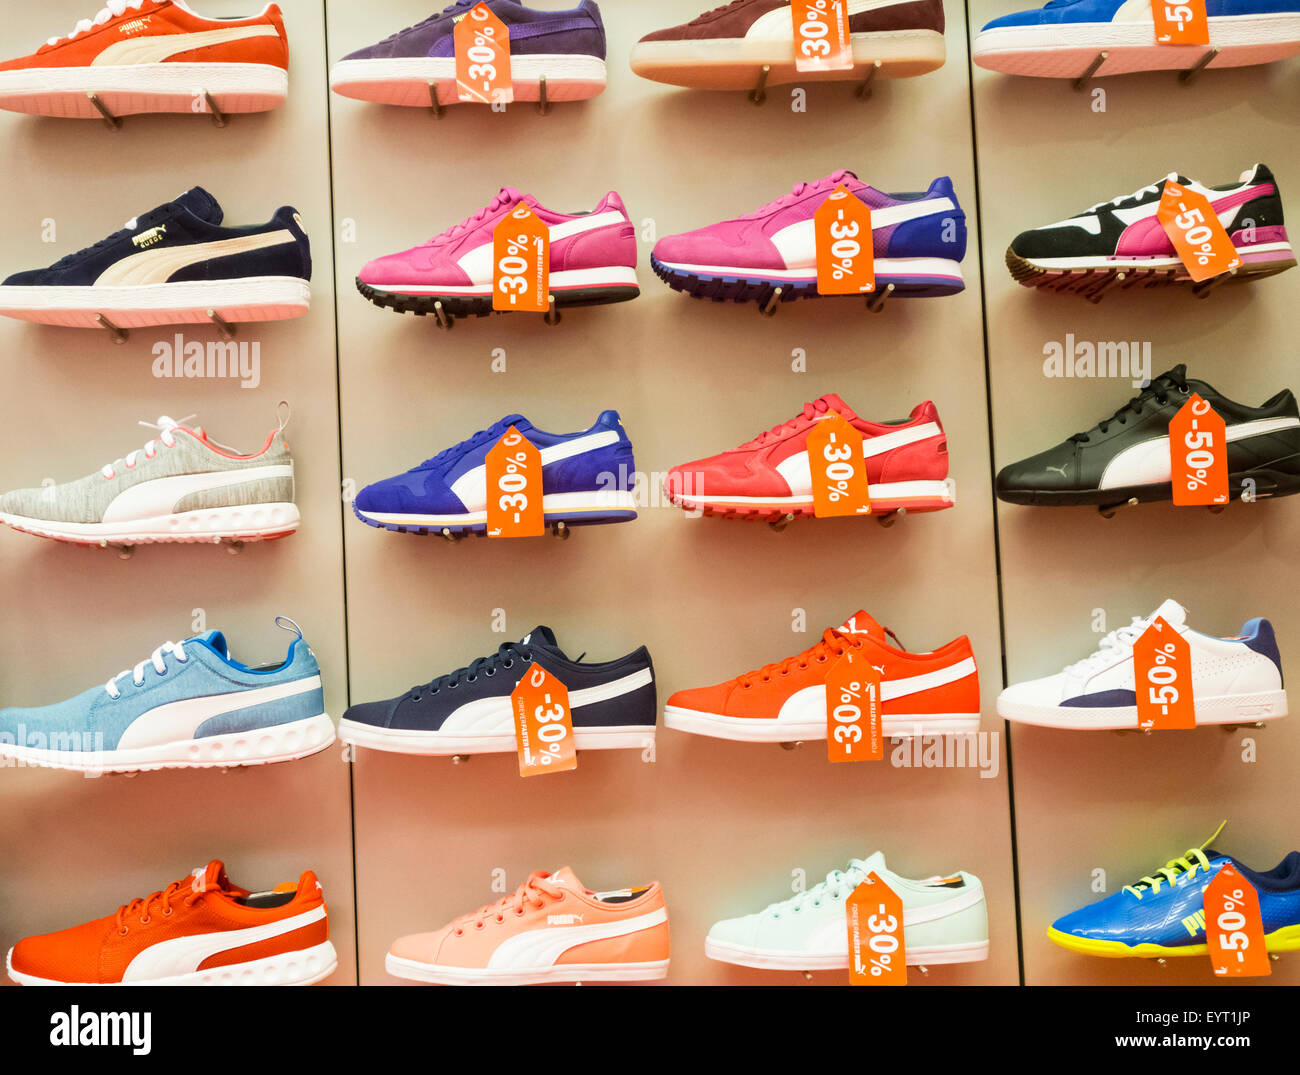 839747f13a0a Puma training shoes display in sports store Stock Photo  85965342 ...